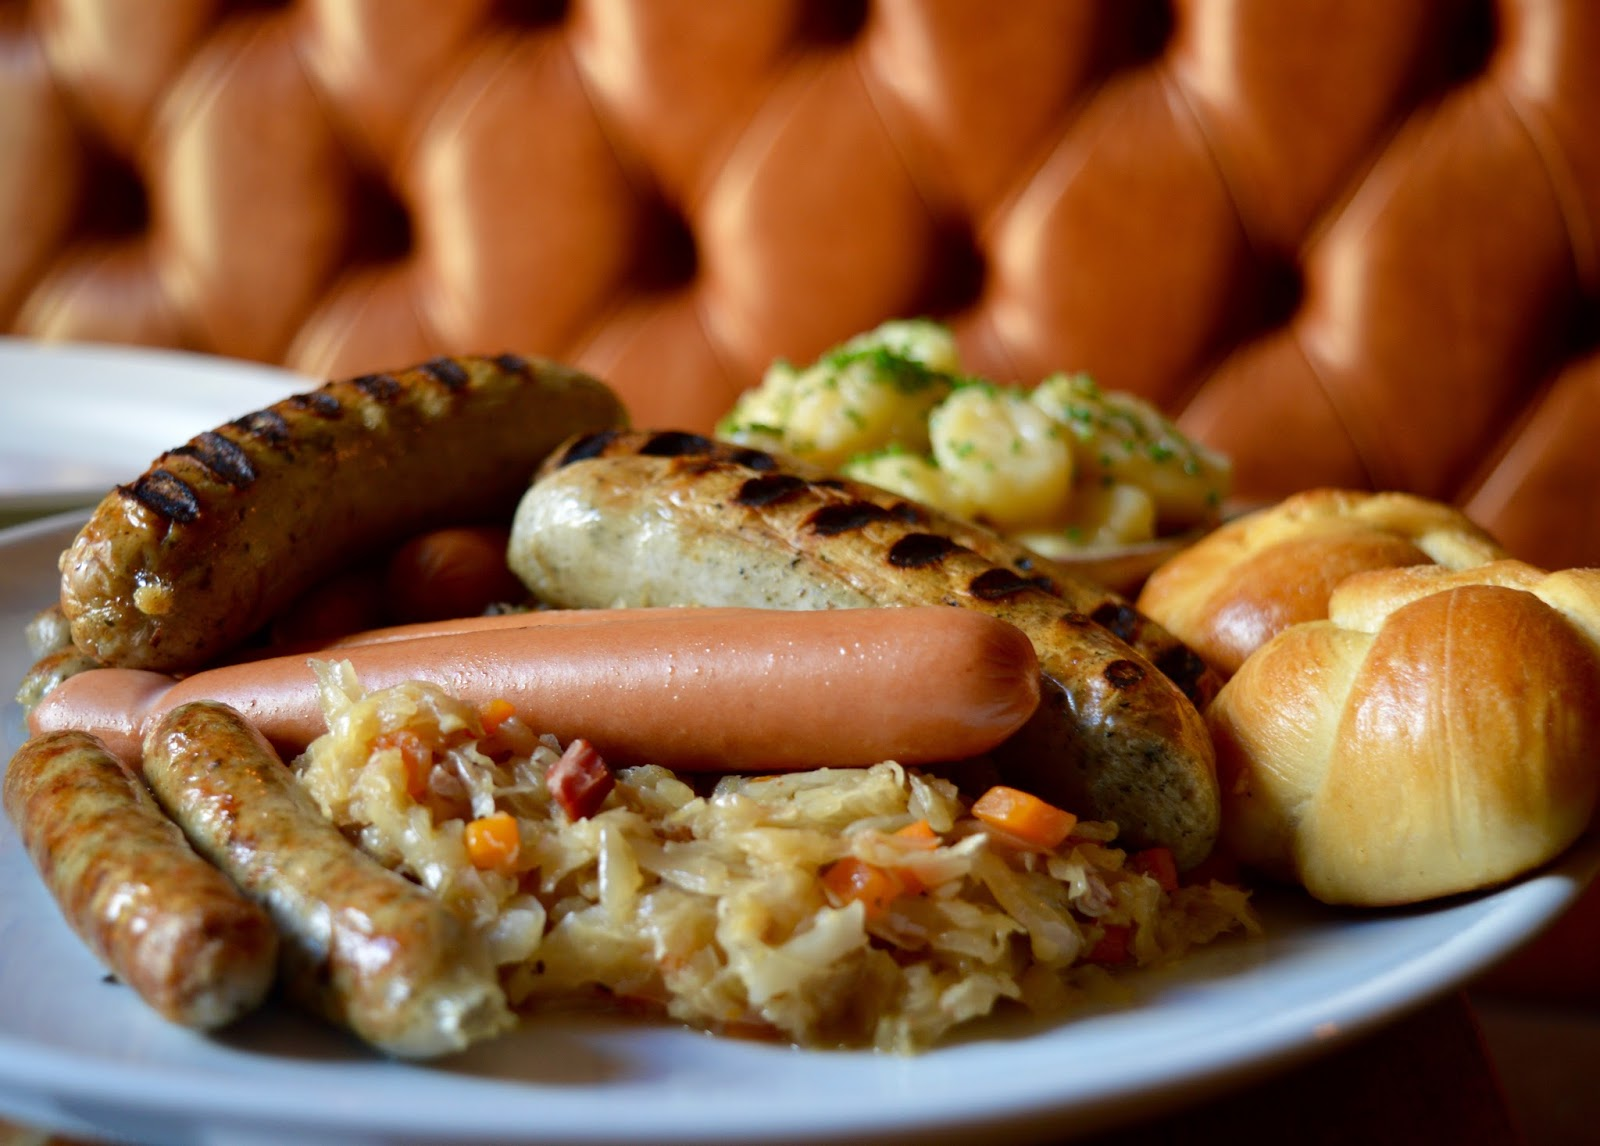 Oktoberfest 2016 | The Broad Chare Newcastle - Bavarian Wurst Platte - German Sausage Platter and Sauerkraut